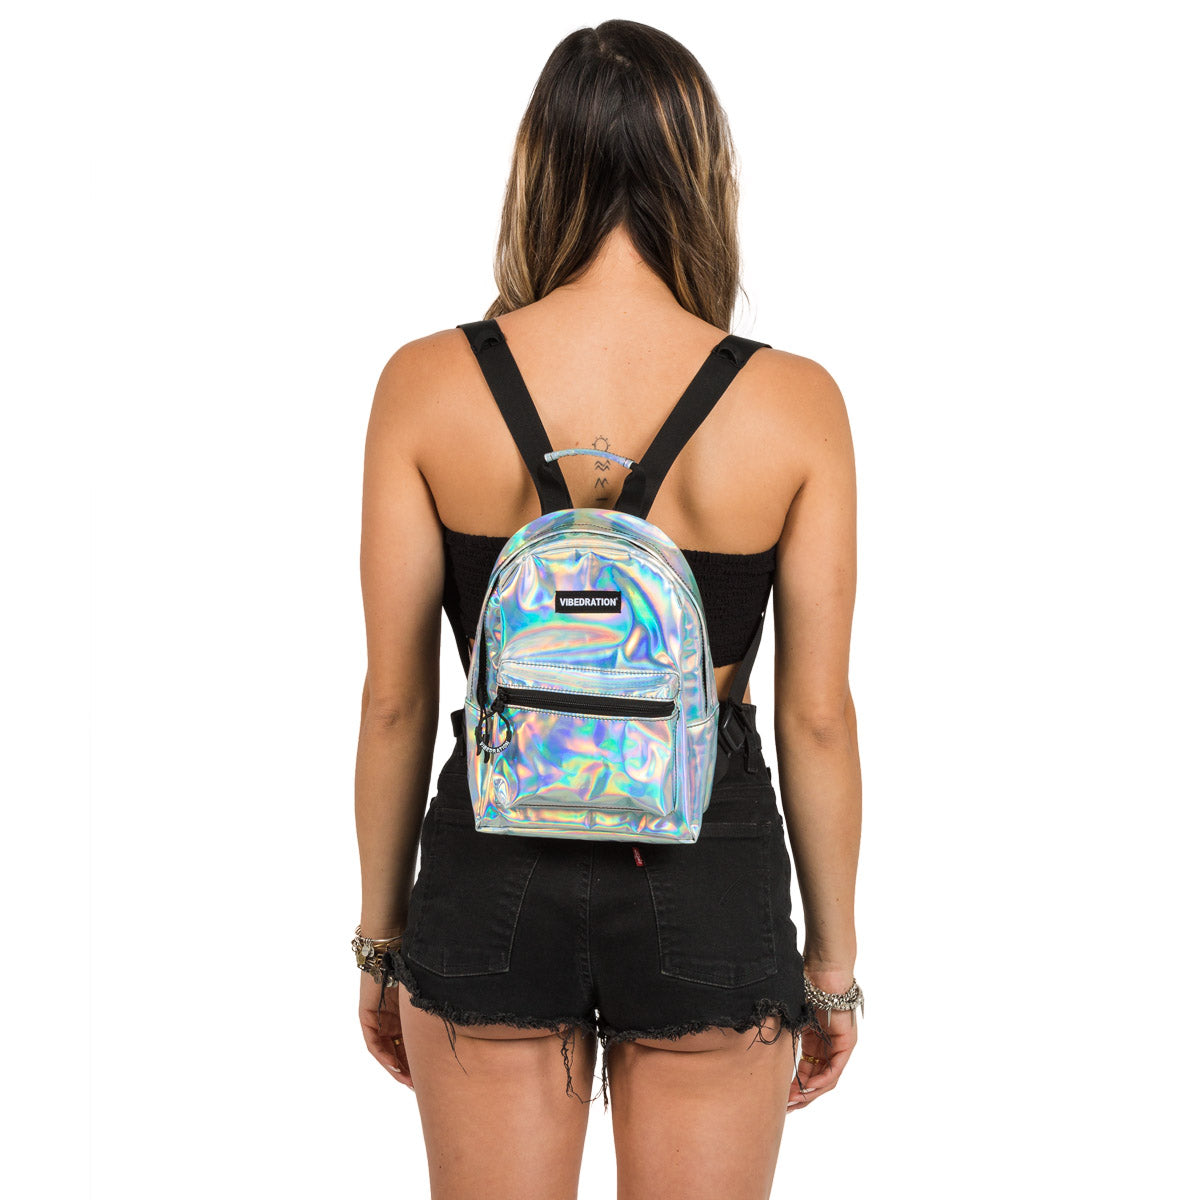 Silver Holographic Mini Backpack for Halloween